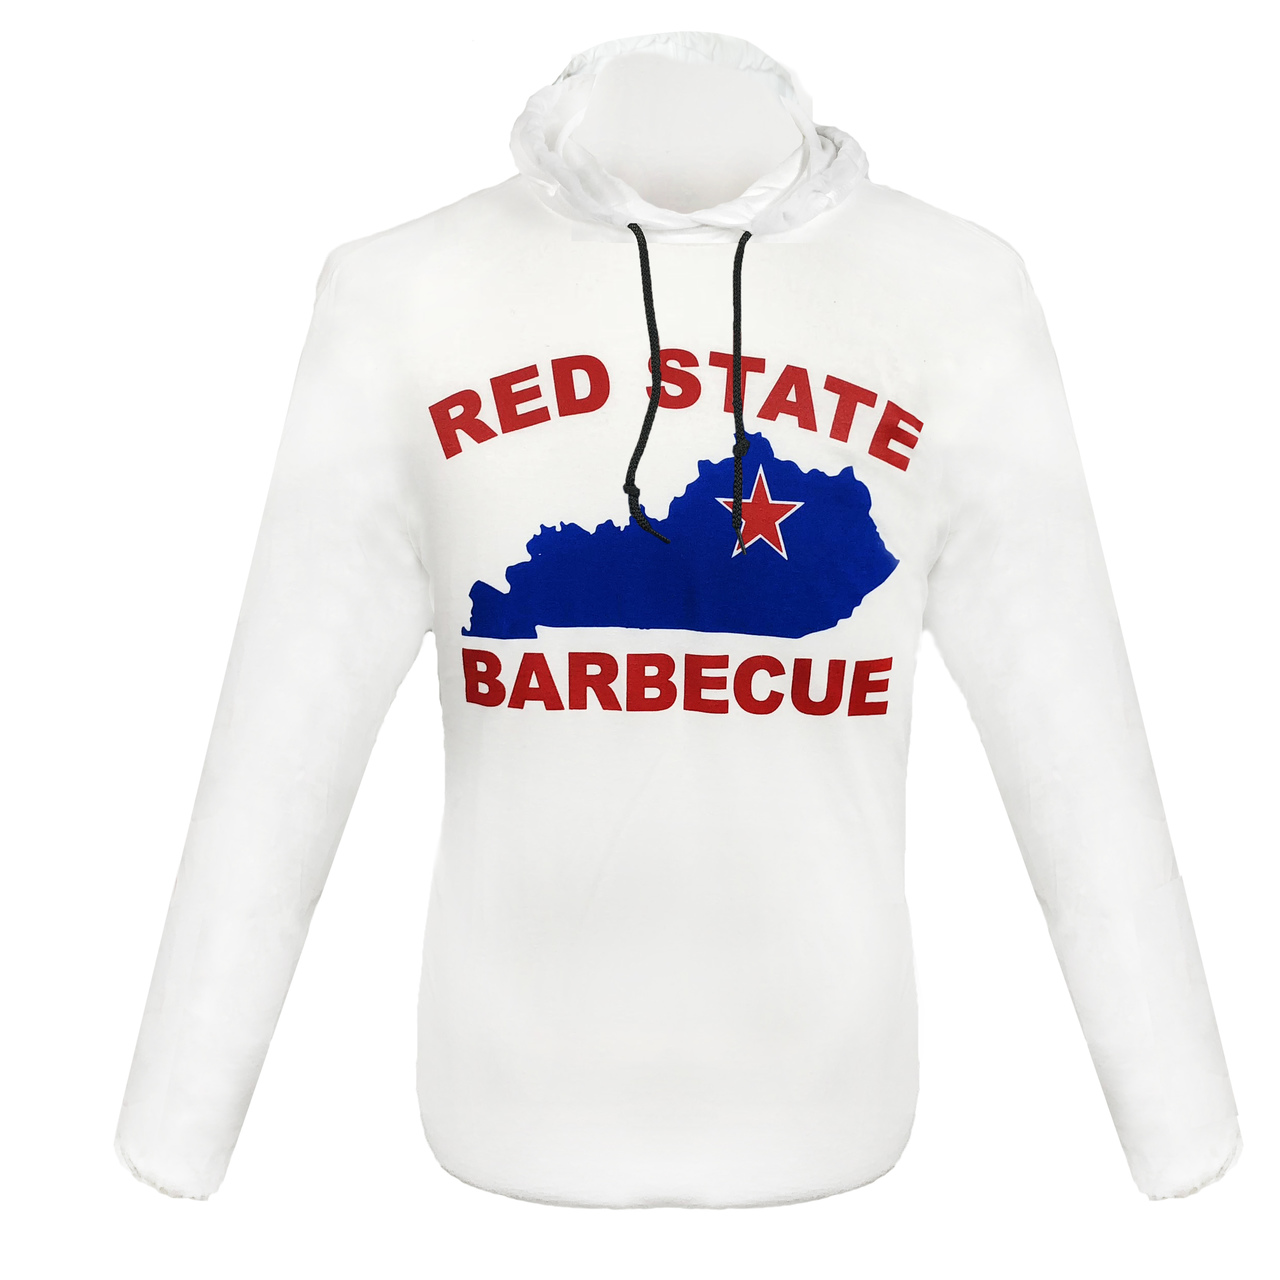 Red State BBQ long sleeve T-shirt hoodie  with Kentucky logo.